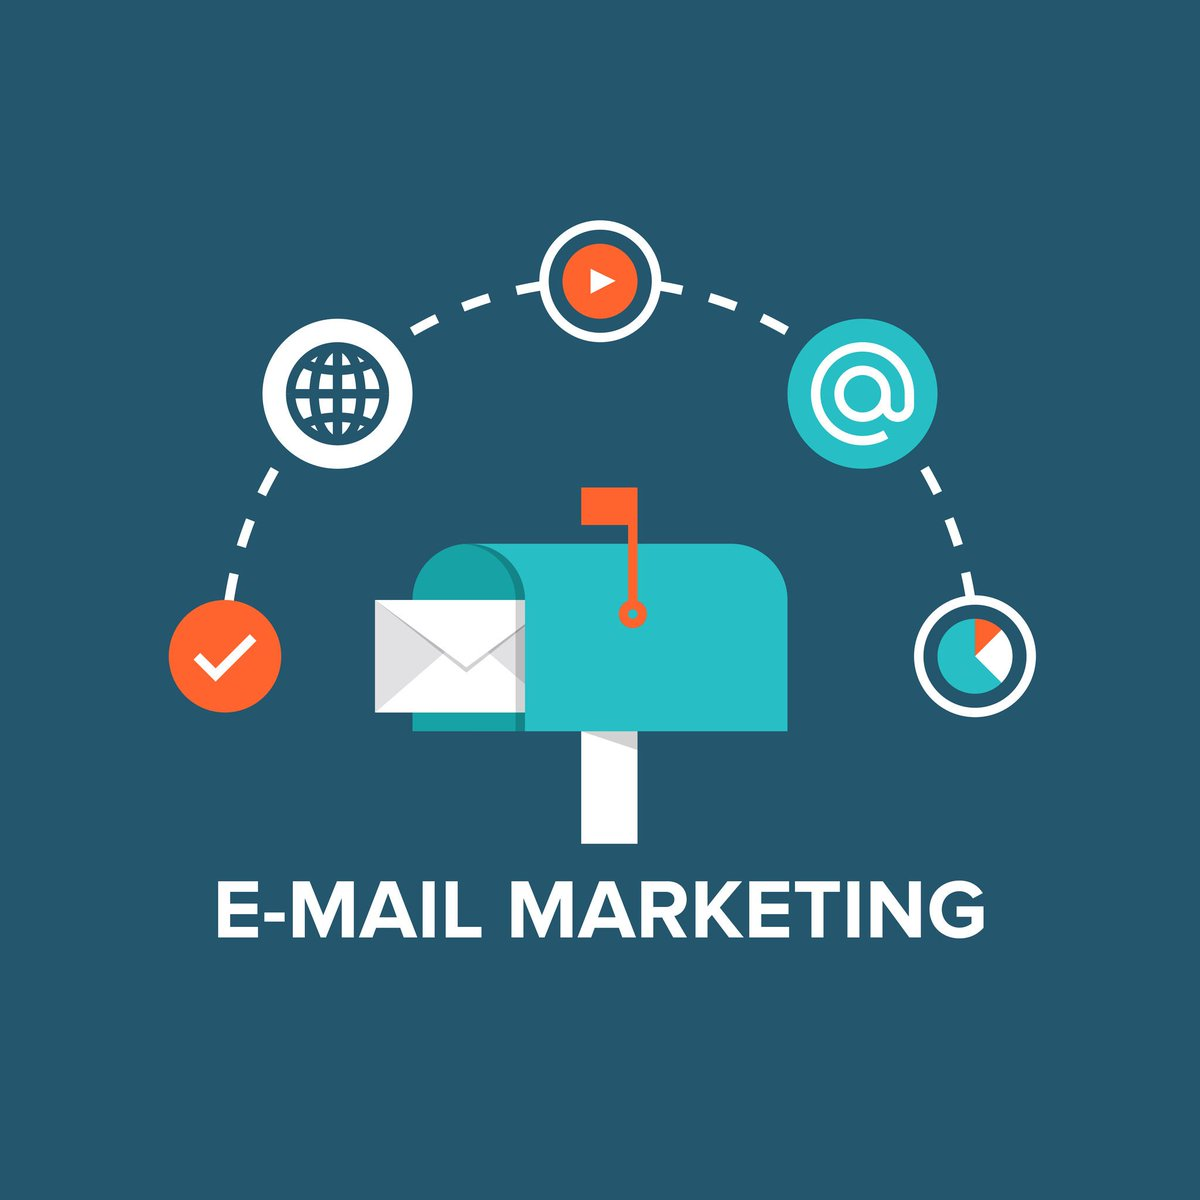 Want to put a personal touch to how you engage with your customers? Talk to Addon about promotional email marketing: https://t.co/nIAk7zgpDe https://t.co/WKF9KMKWaf